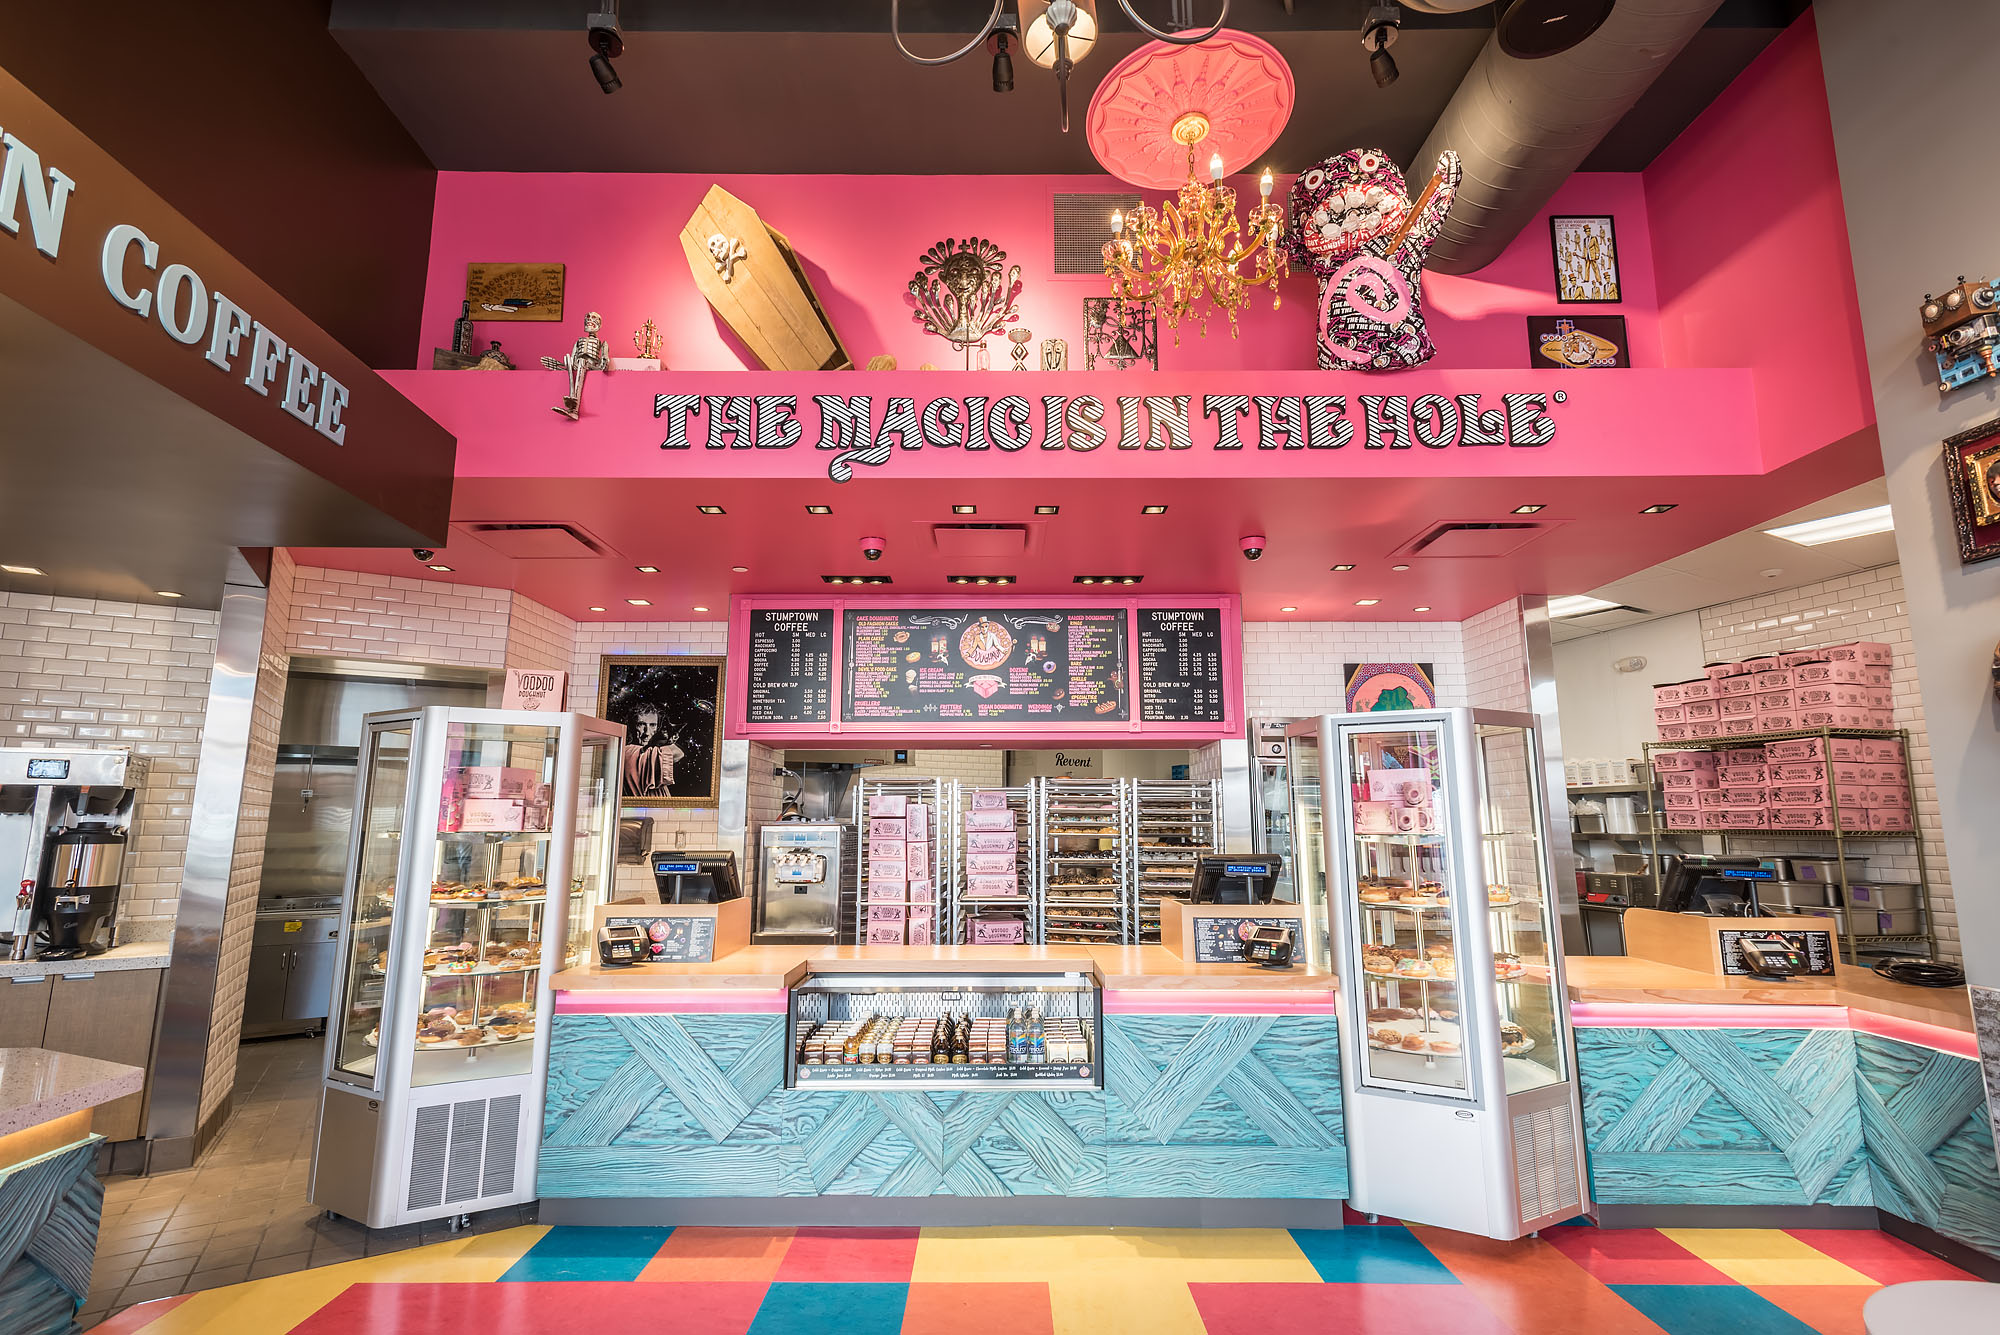 voodoo doughnut spellbinds today at universal citywalk in la eater la. Black Bedroom Furniture Sets. Home Design Ideas